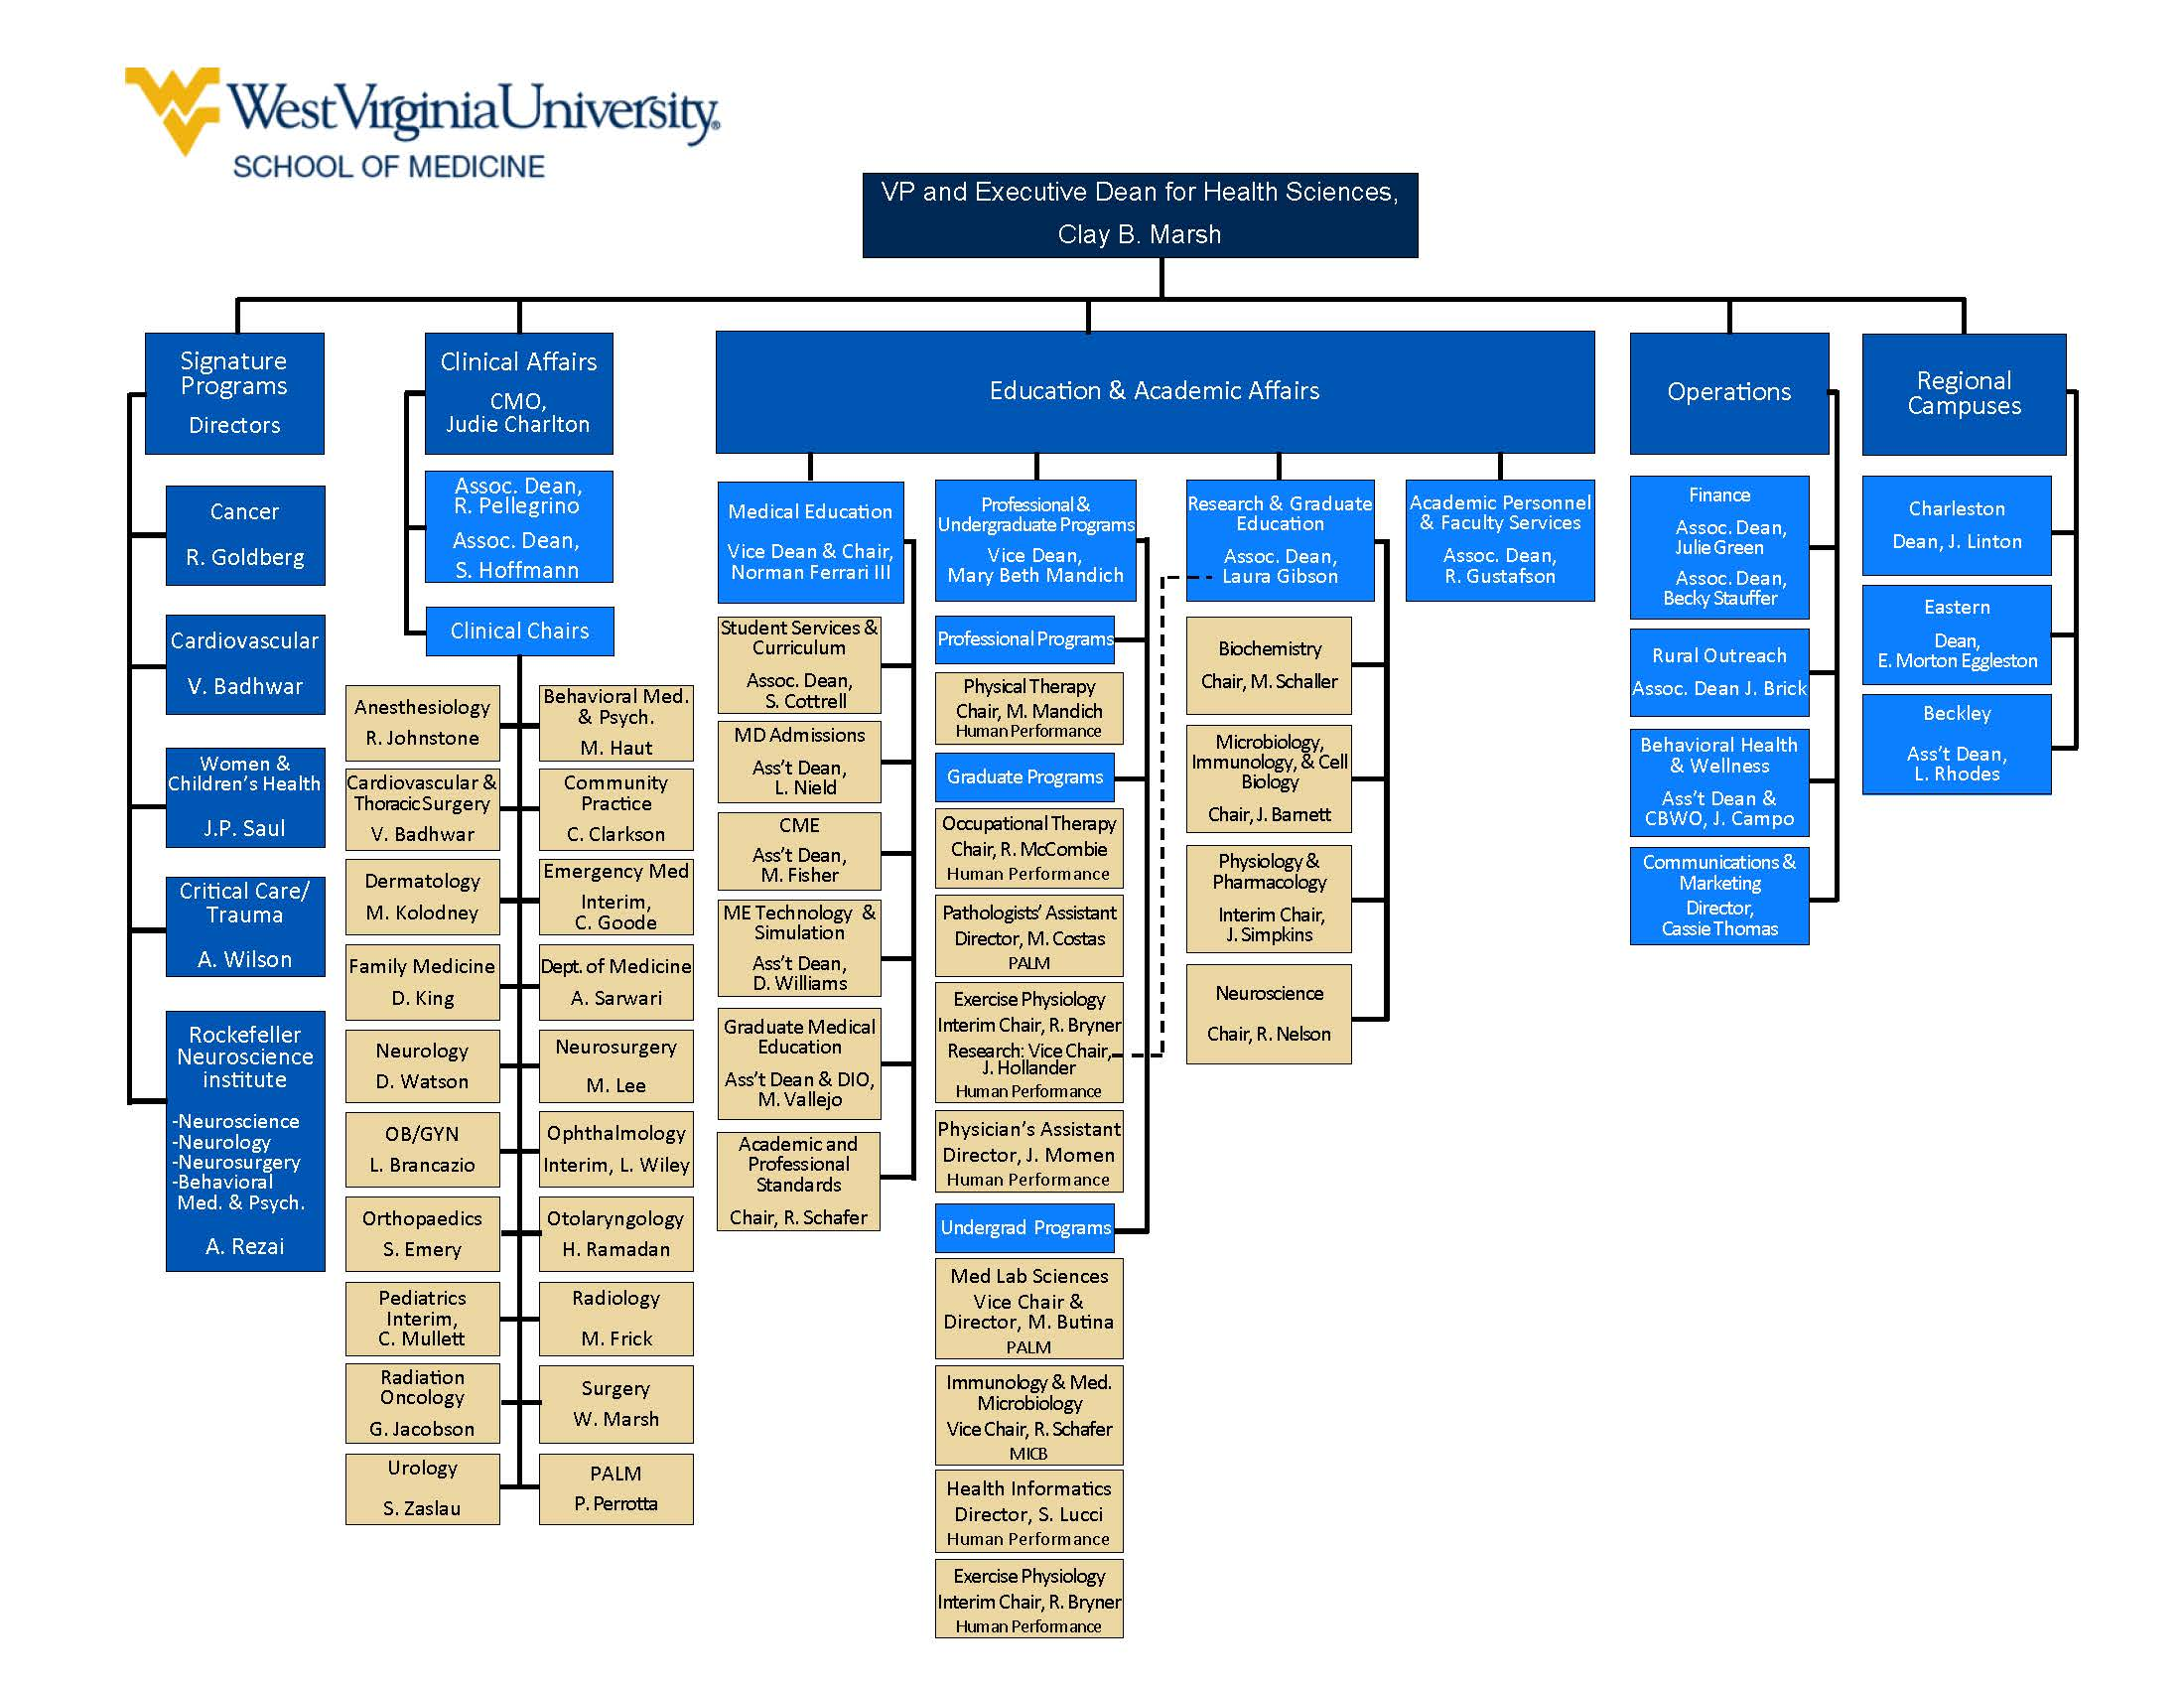 Organizational leadership chart for the School of Medicine